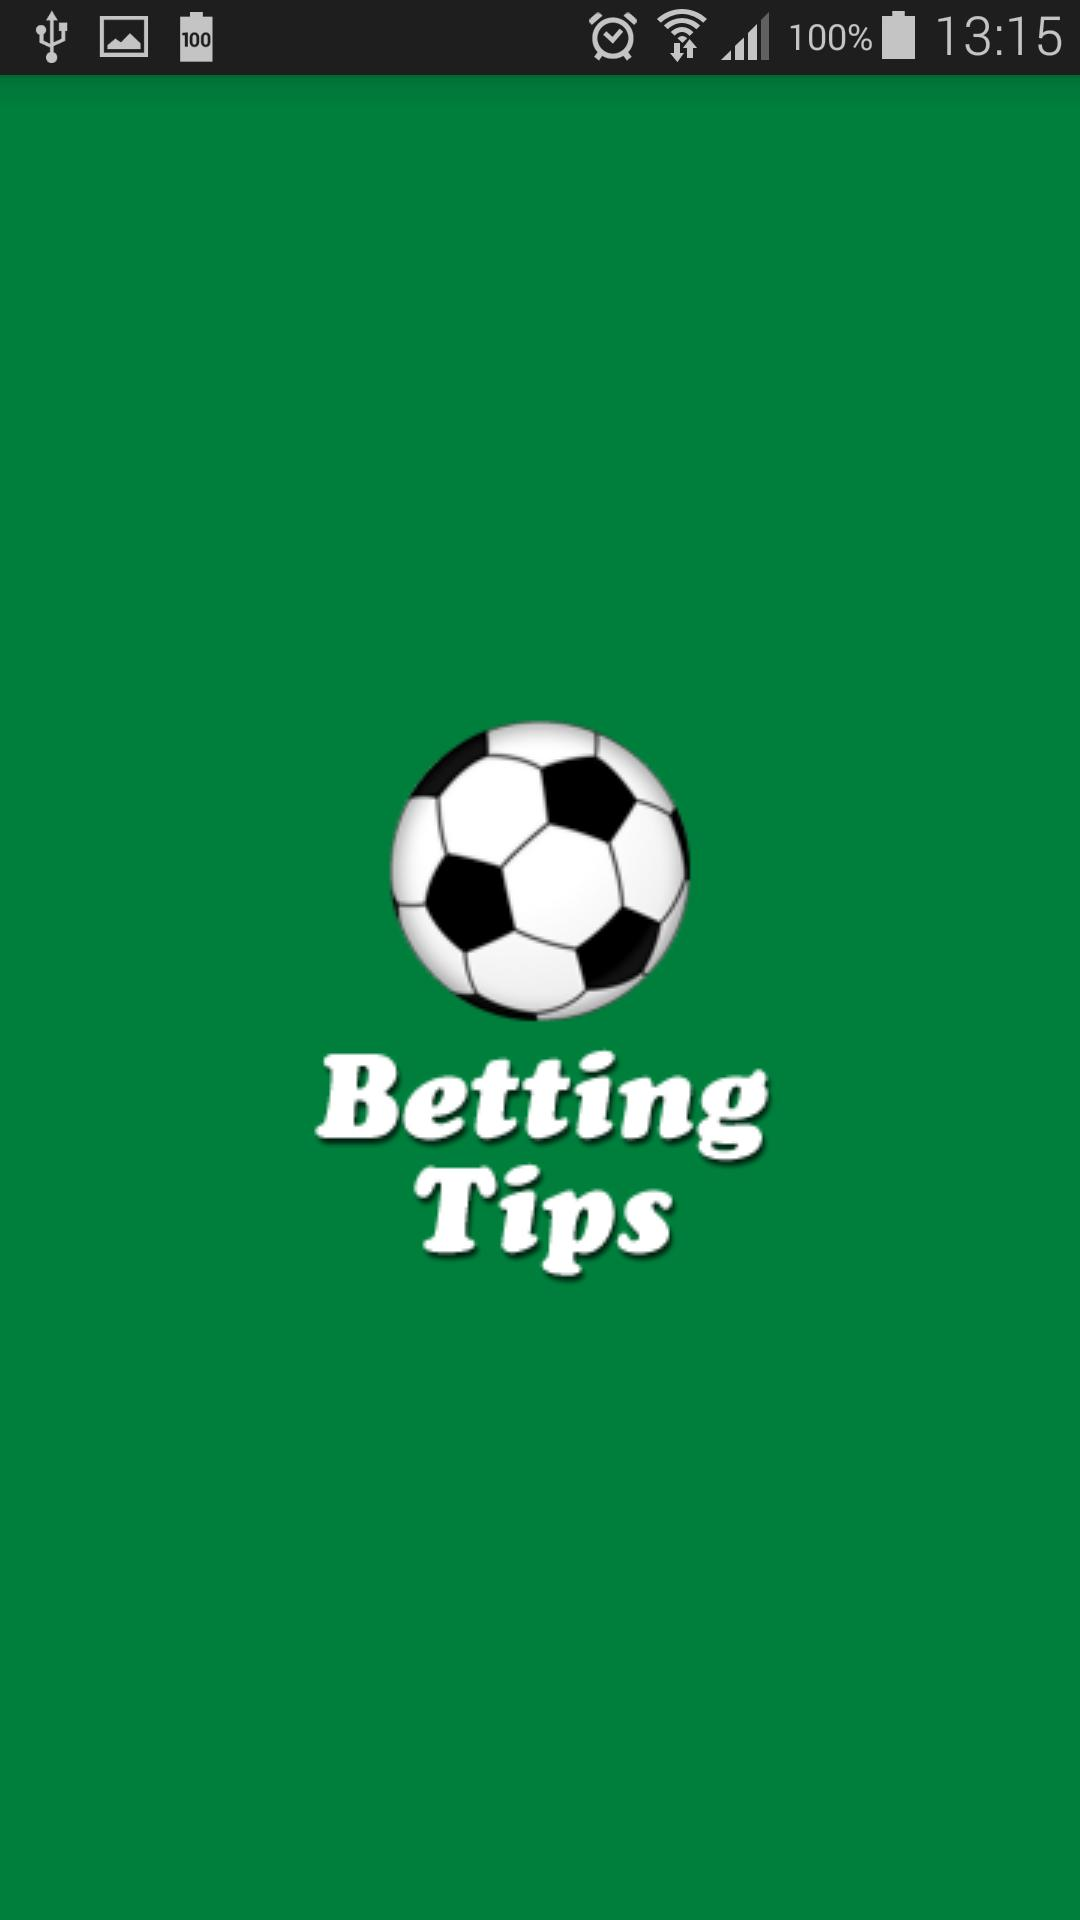 Pawel betting tips cricket betting sites in uk